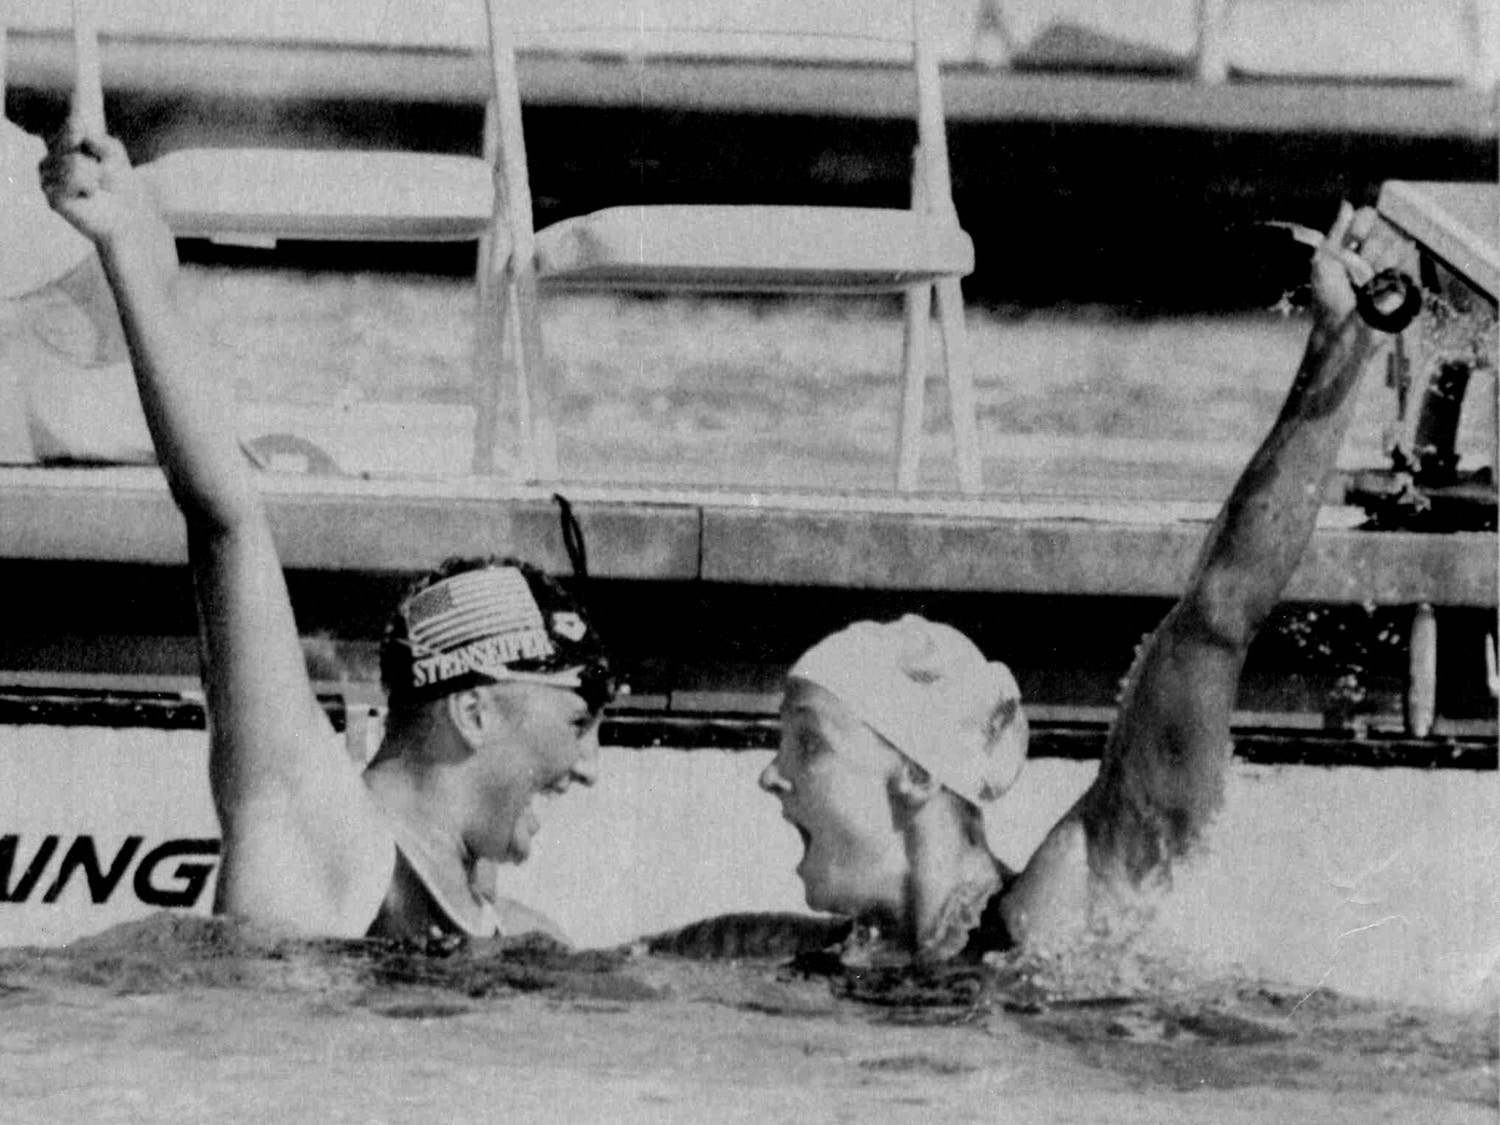 Nancy Hogshead dominated the Olympic scene at just 22 years old. She grabbed four medals in her only Olympic Games.